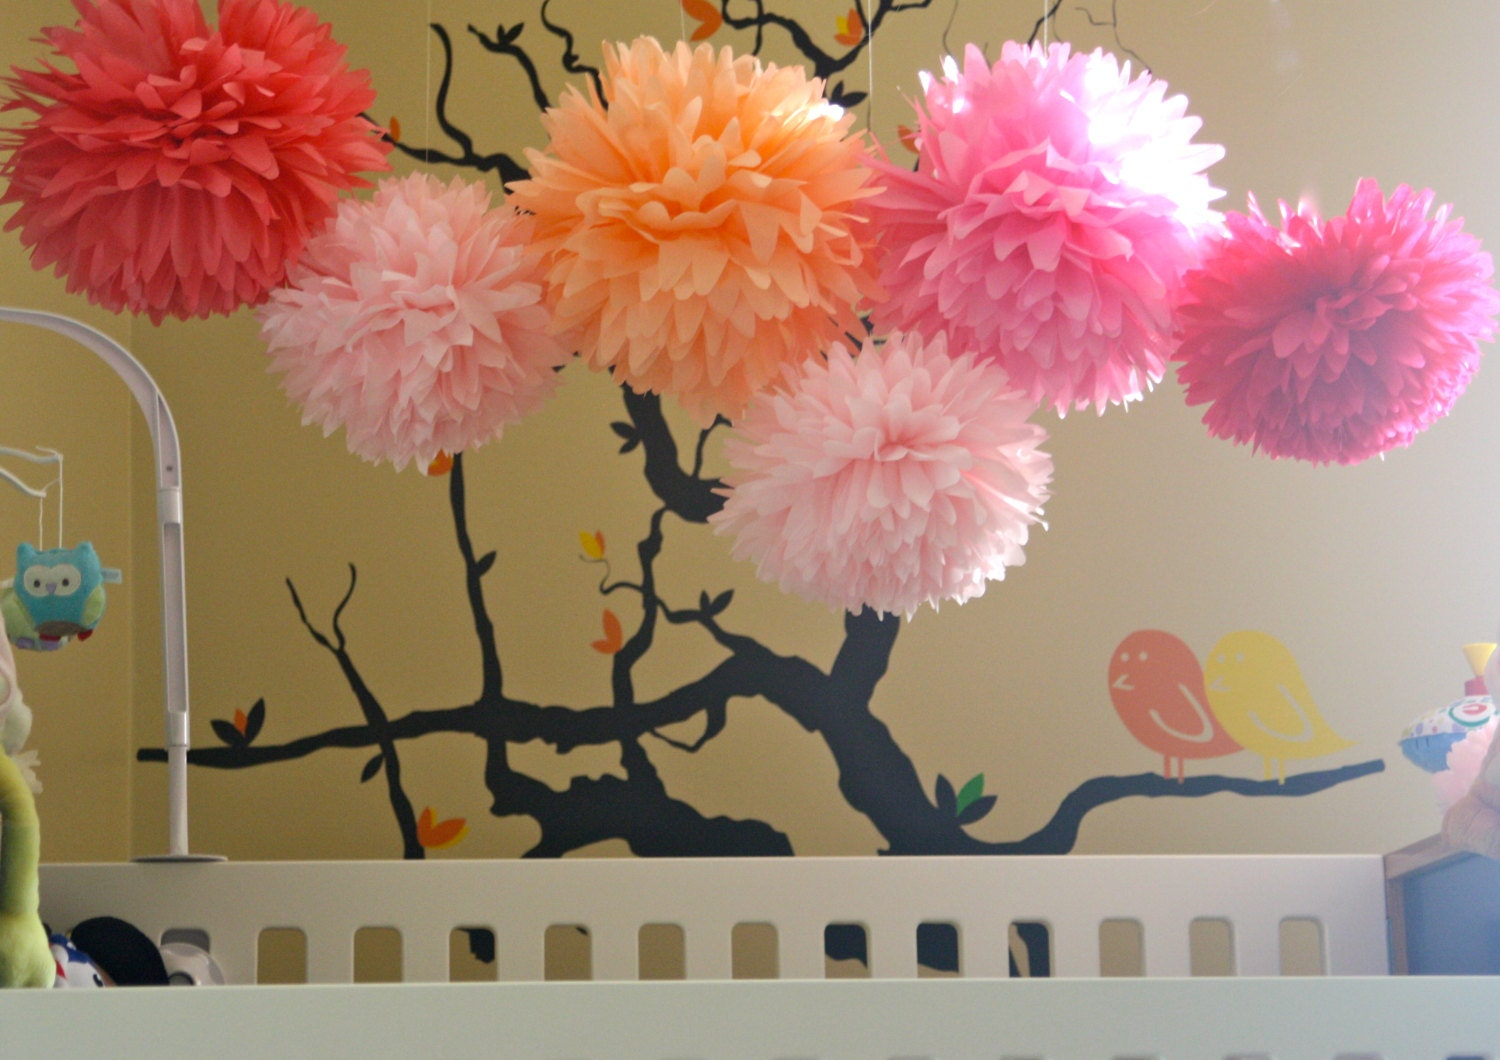 Baby shower wedding buy tissue paper poms tissue paper pom pom kit - Diy Tissue Pom Poms This Item Sold On August 5